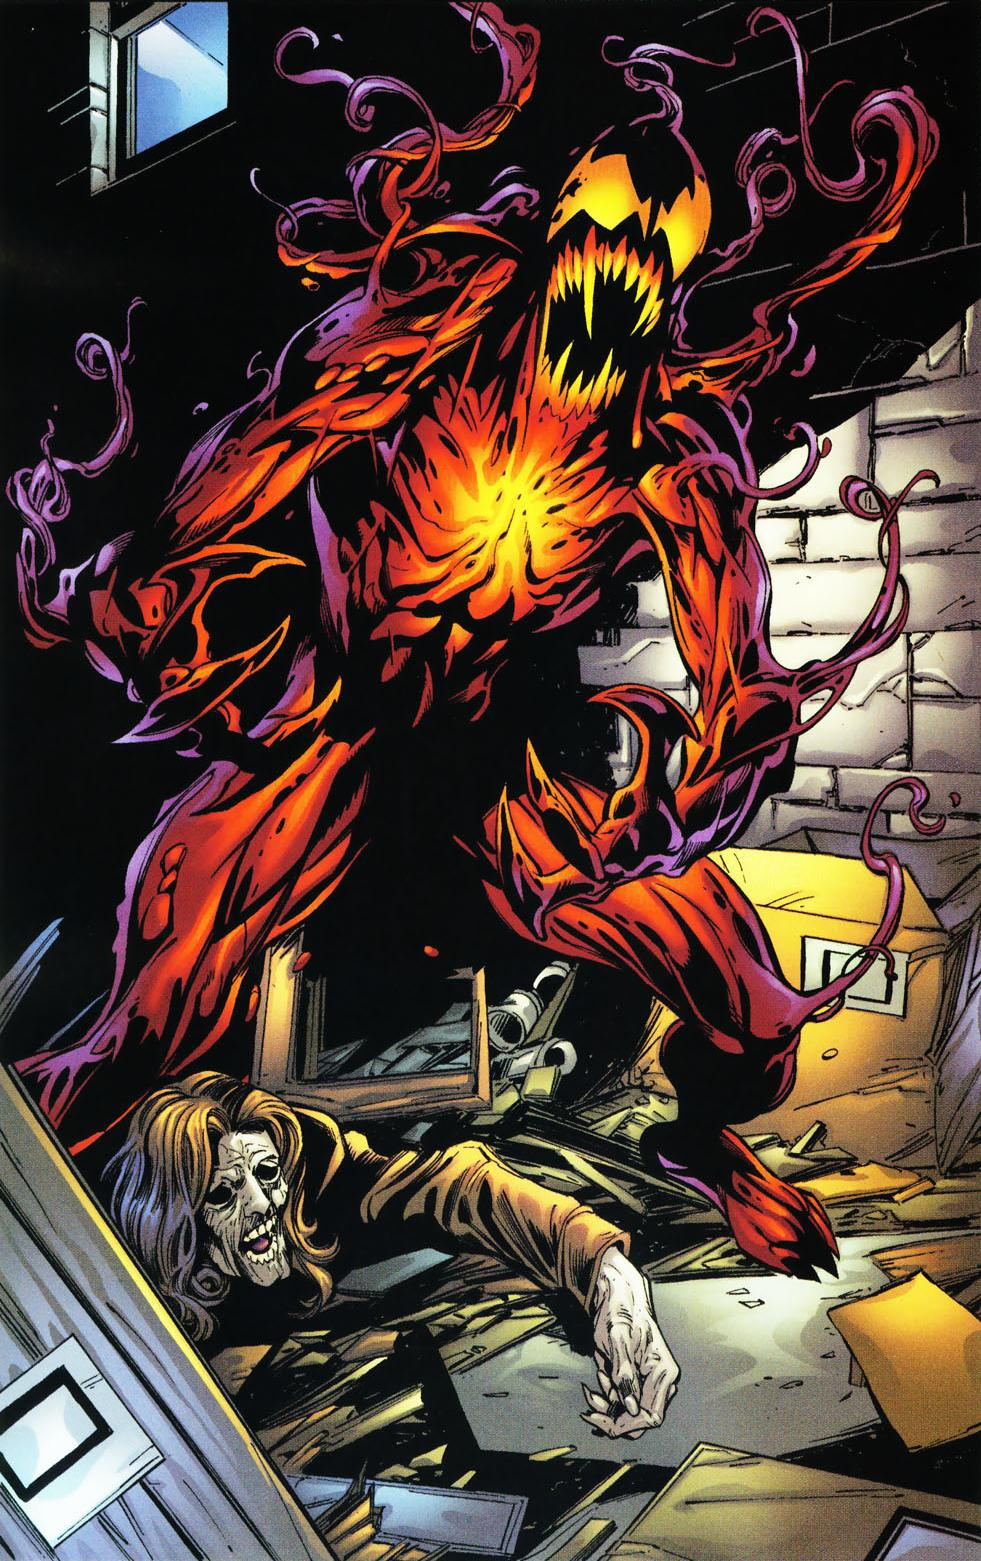 Carnage (Vampiric Life-Form) (Earth-1610) | Spider-Man ...